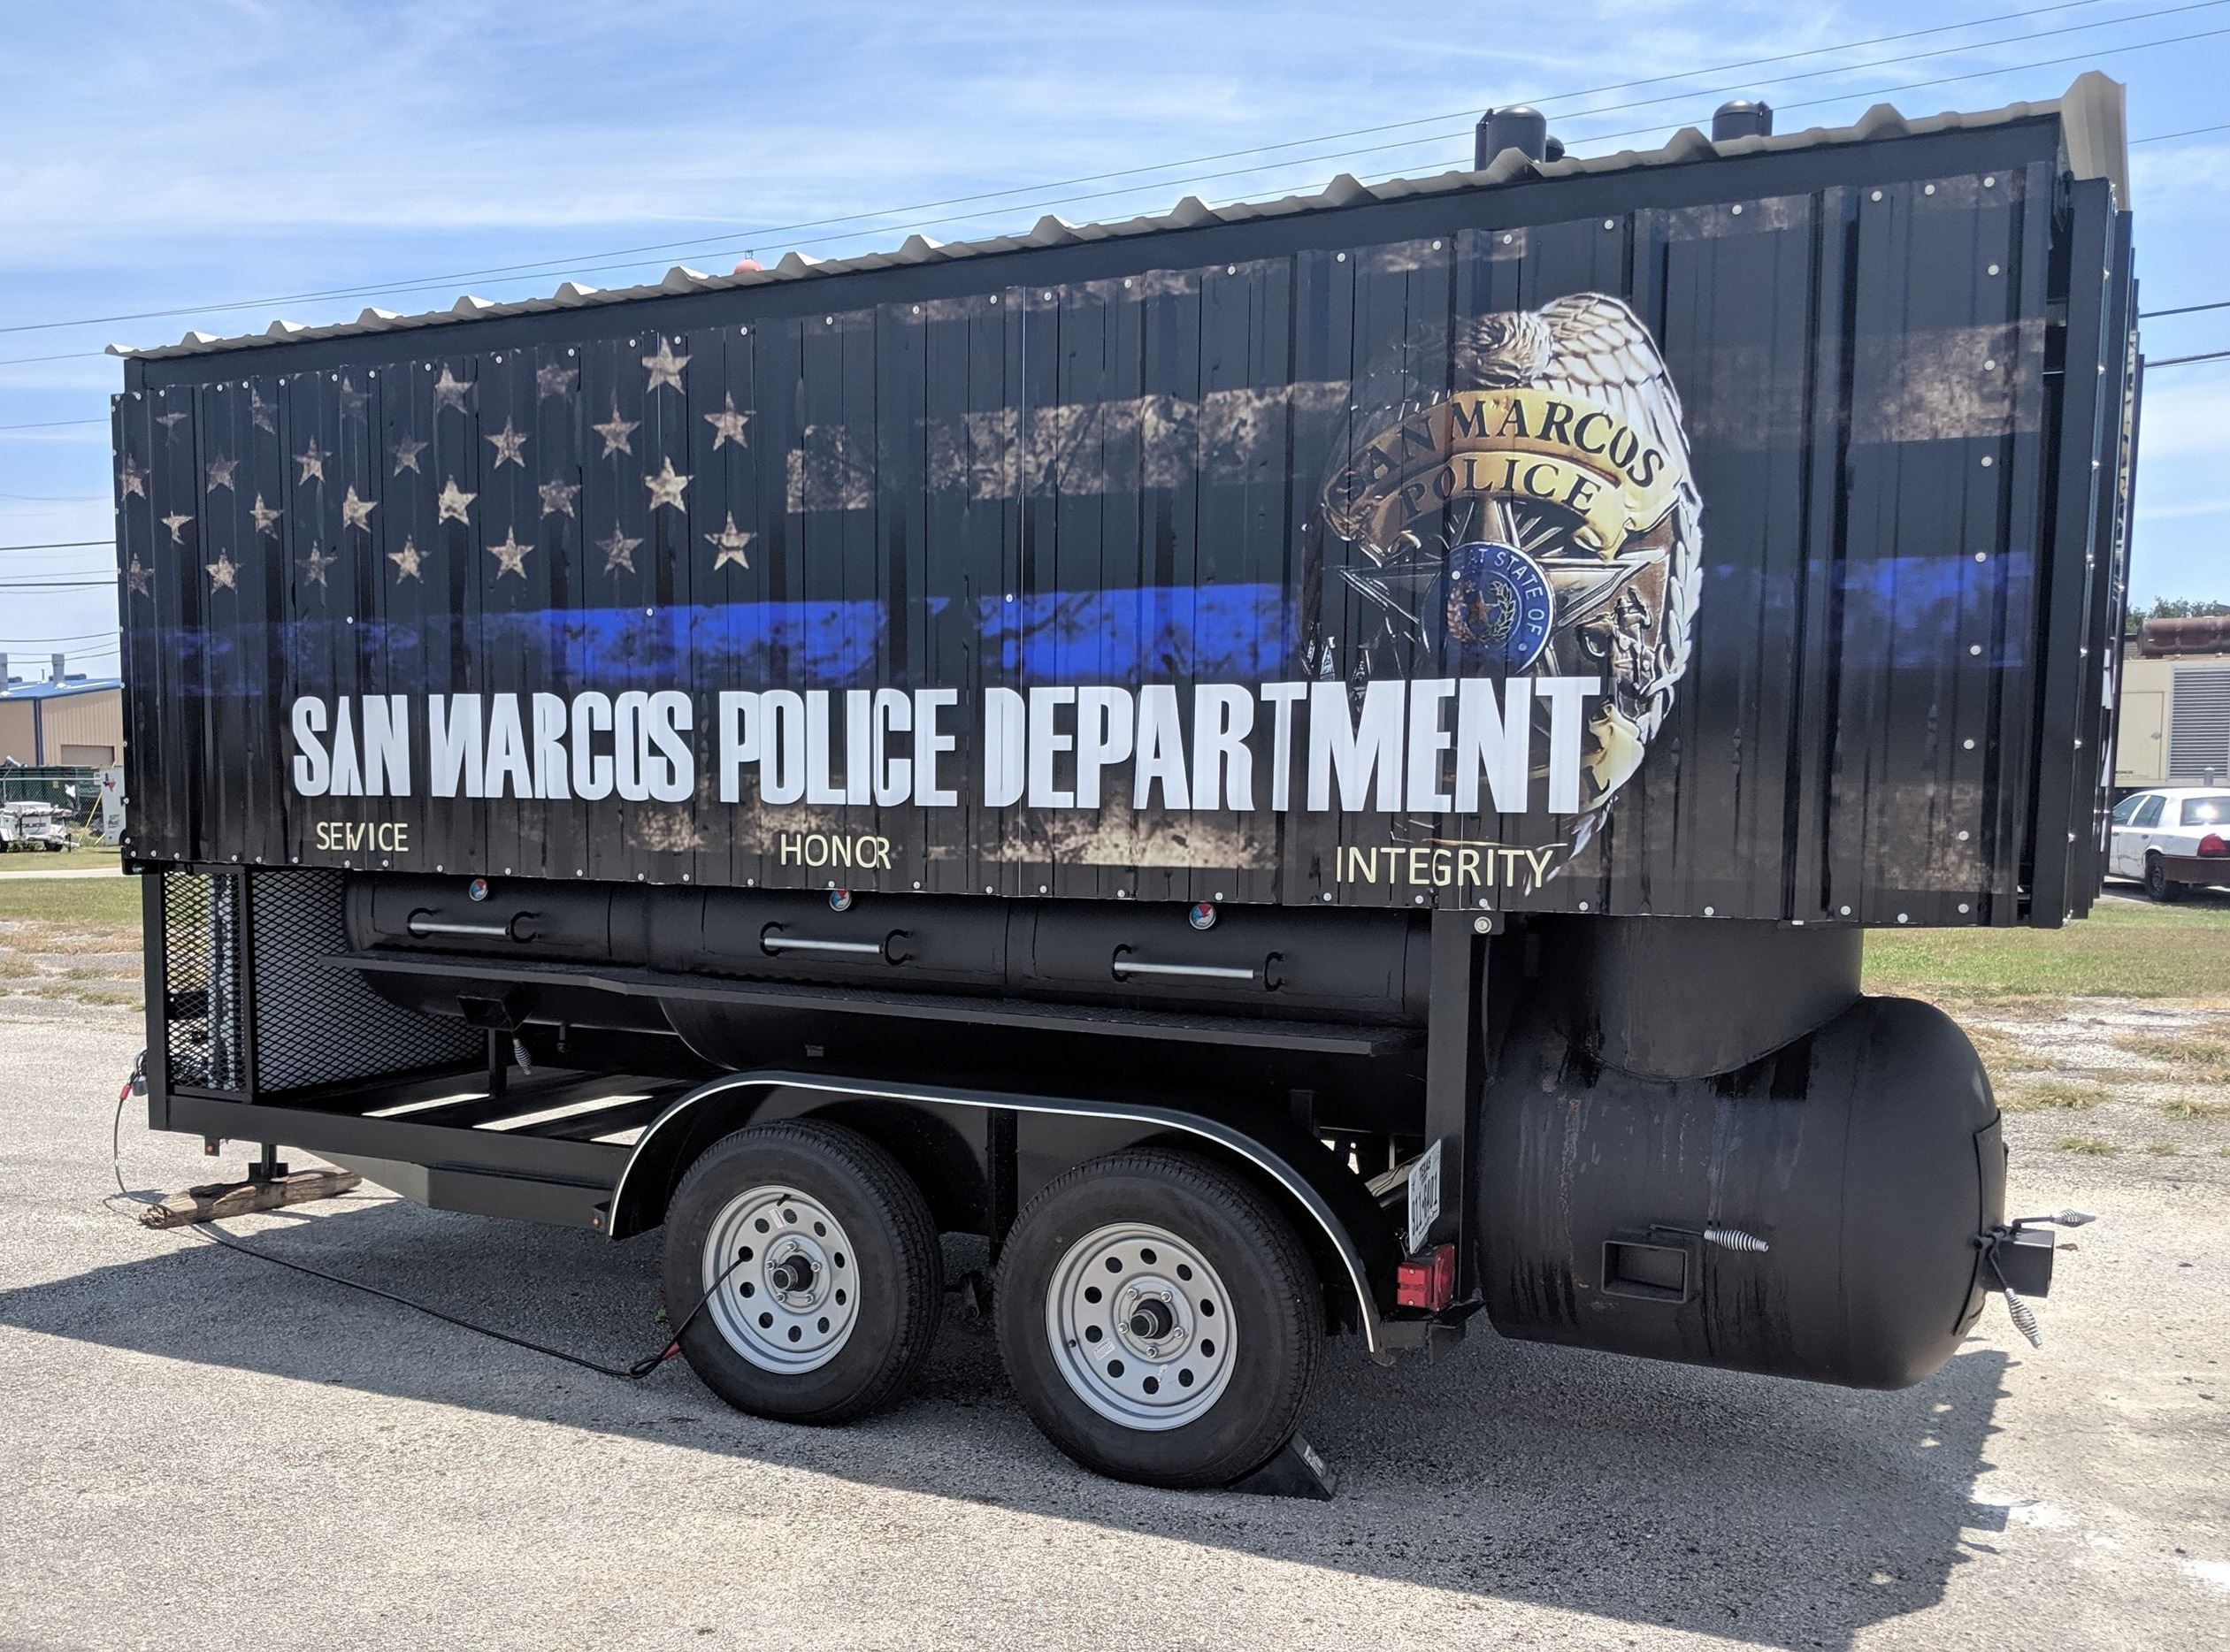 Large barbecue pit trailer with San Marcos Police Department logo on the outside